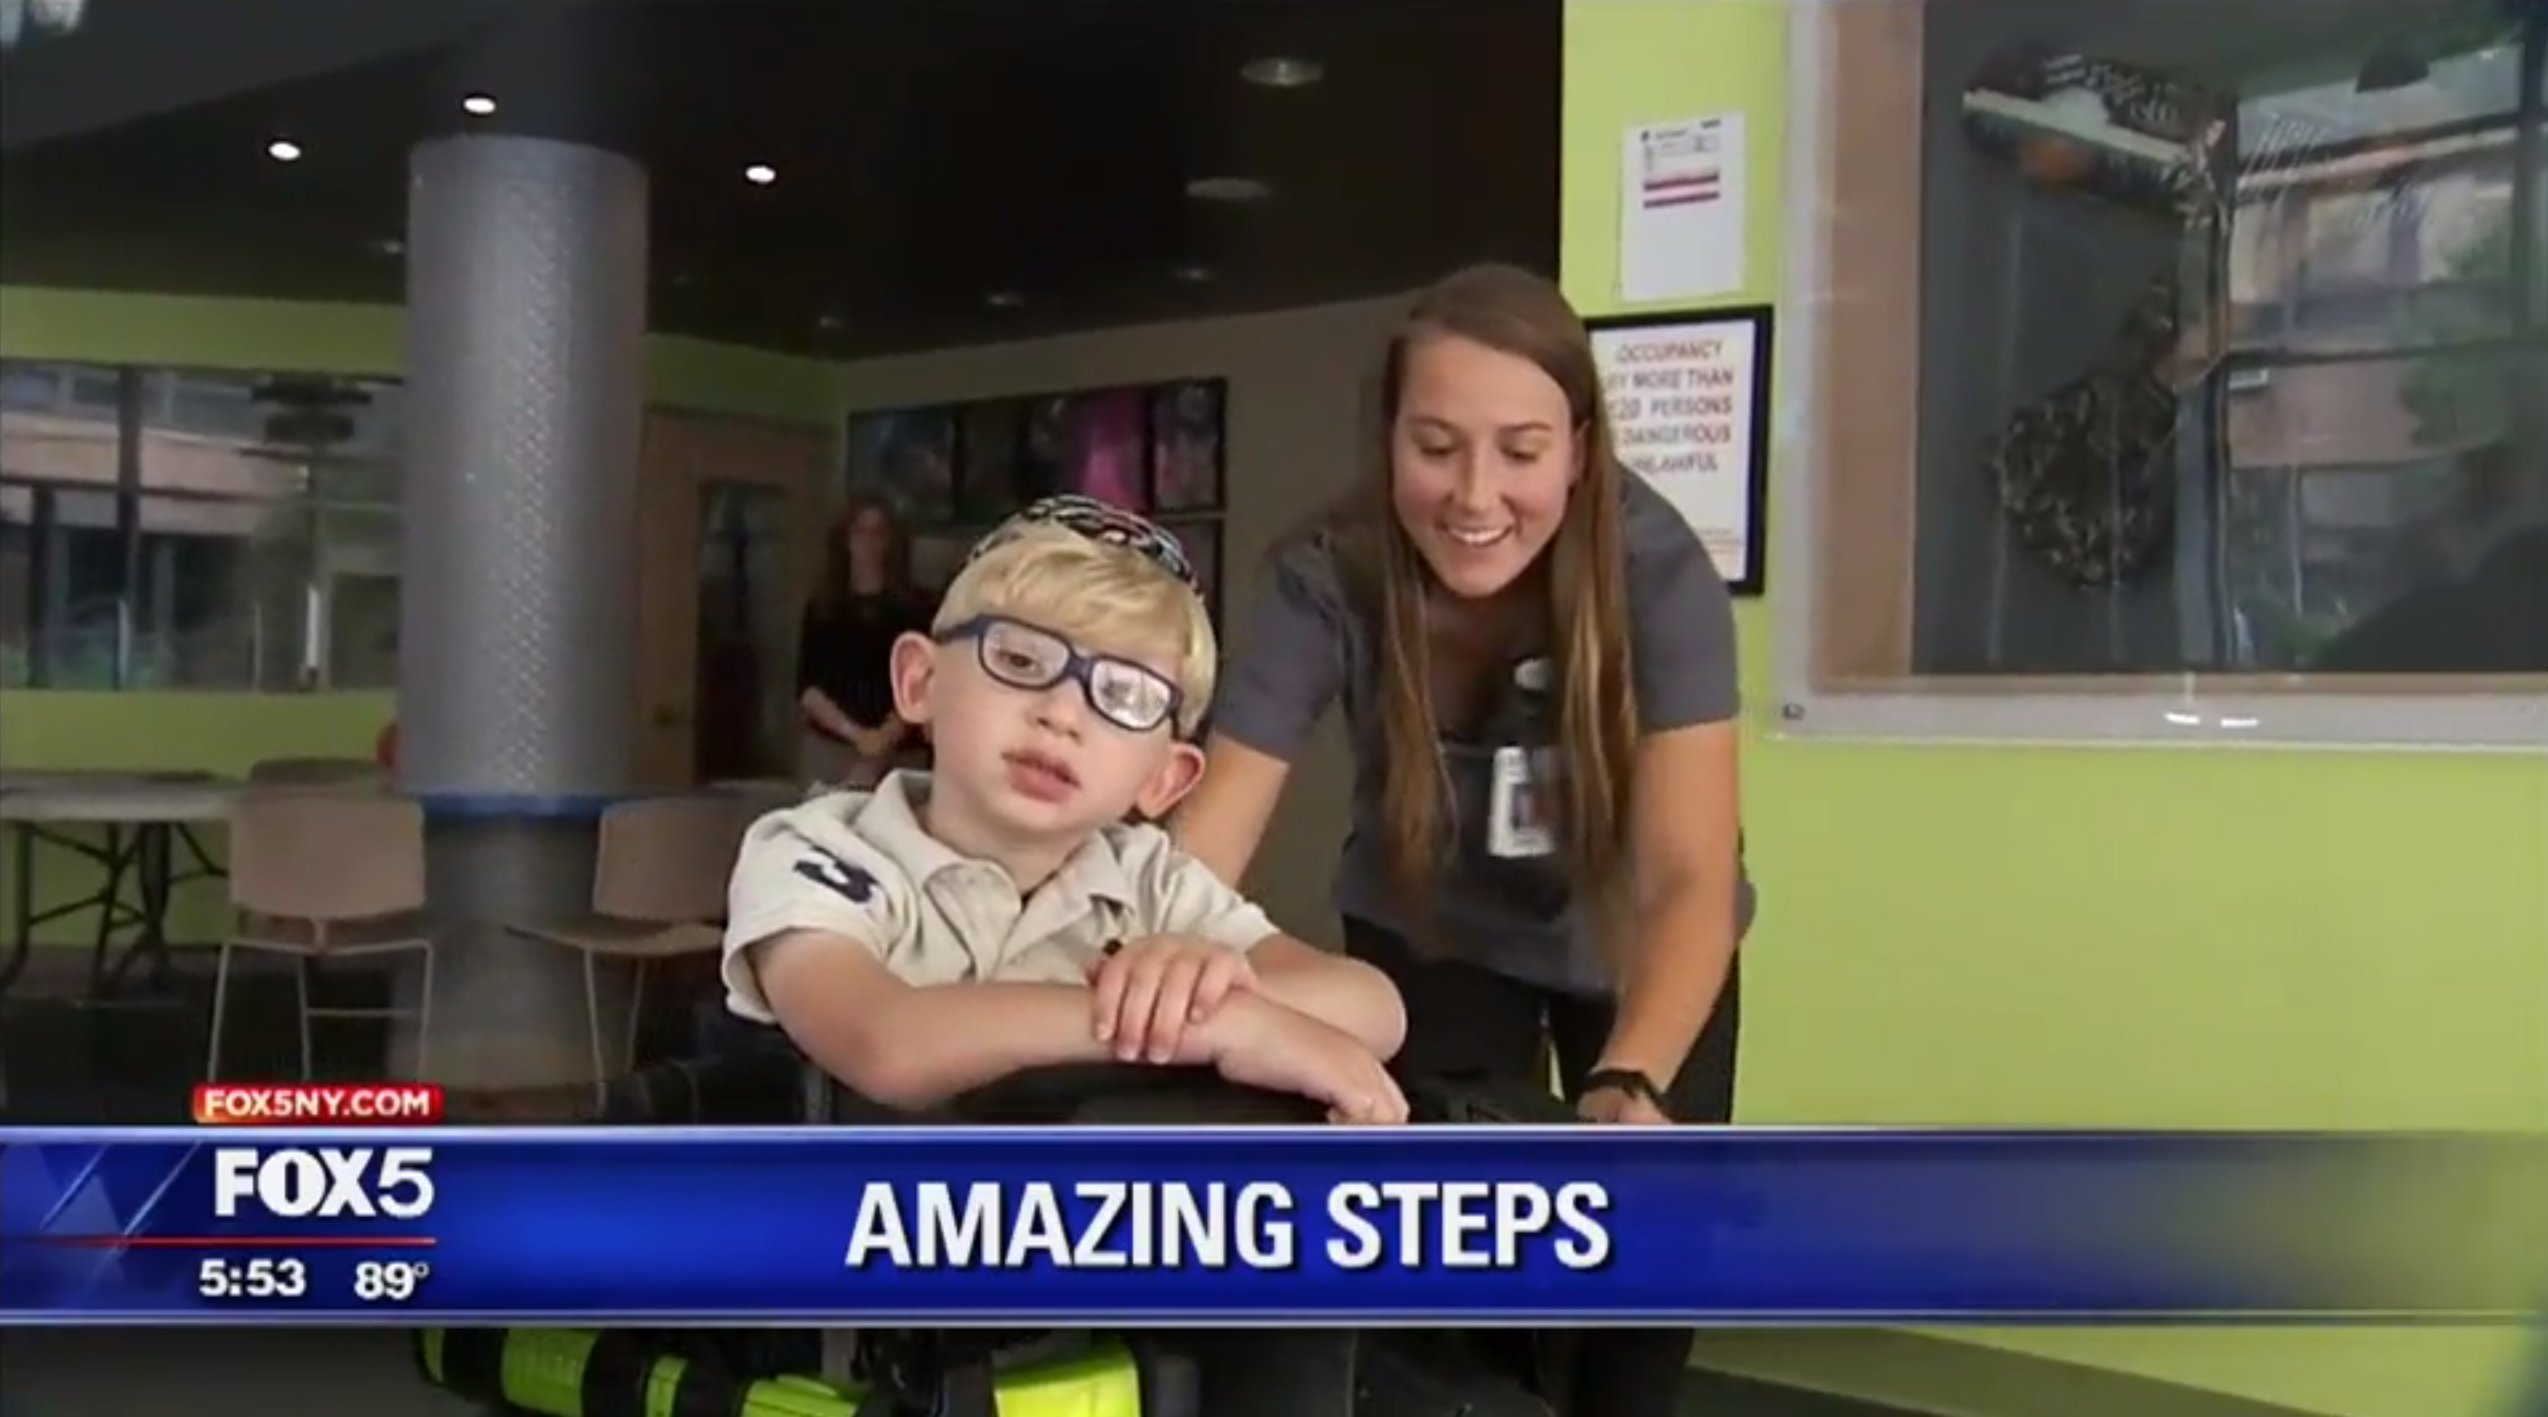 St Mary's Hospital for Children and Trexo in Fox news